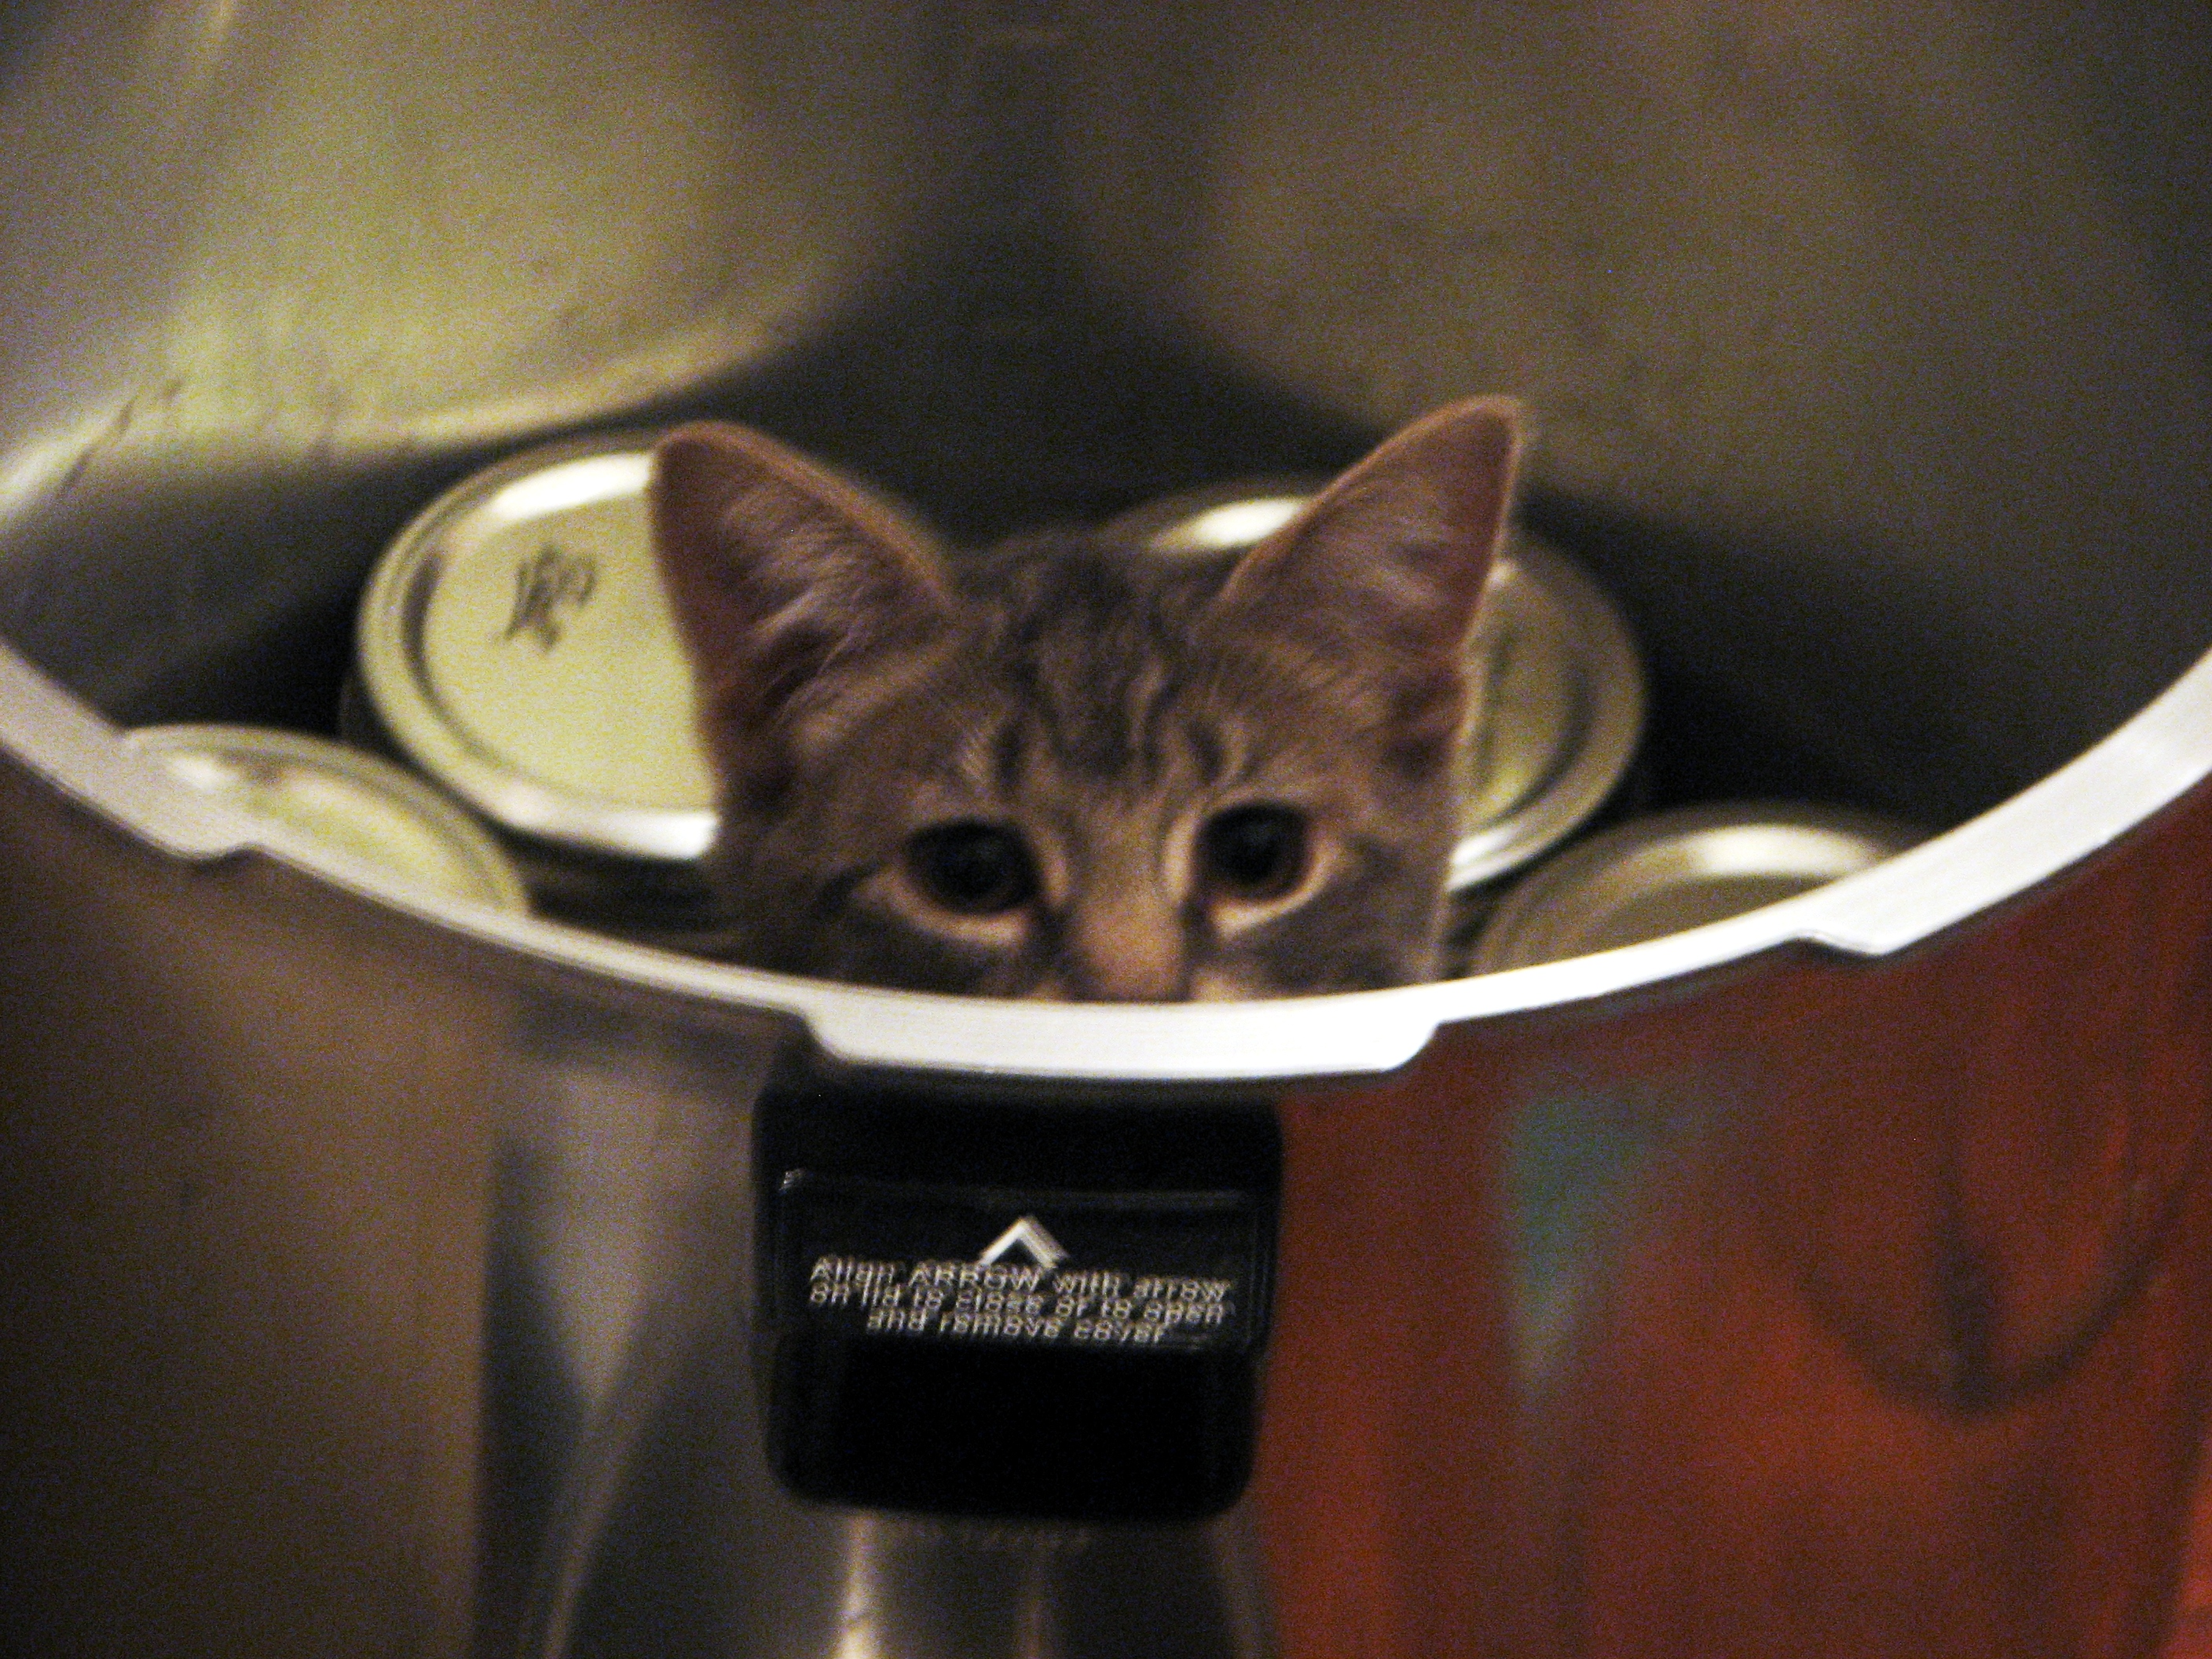 A small grey kitten peering over the edge of a large pressure canner in a vaguely menacing way.